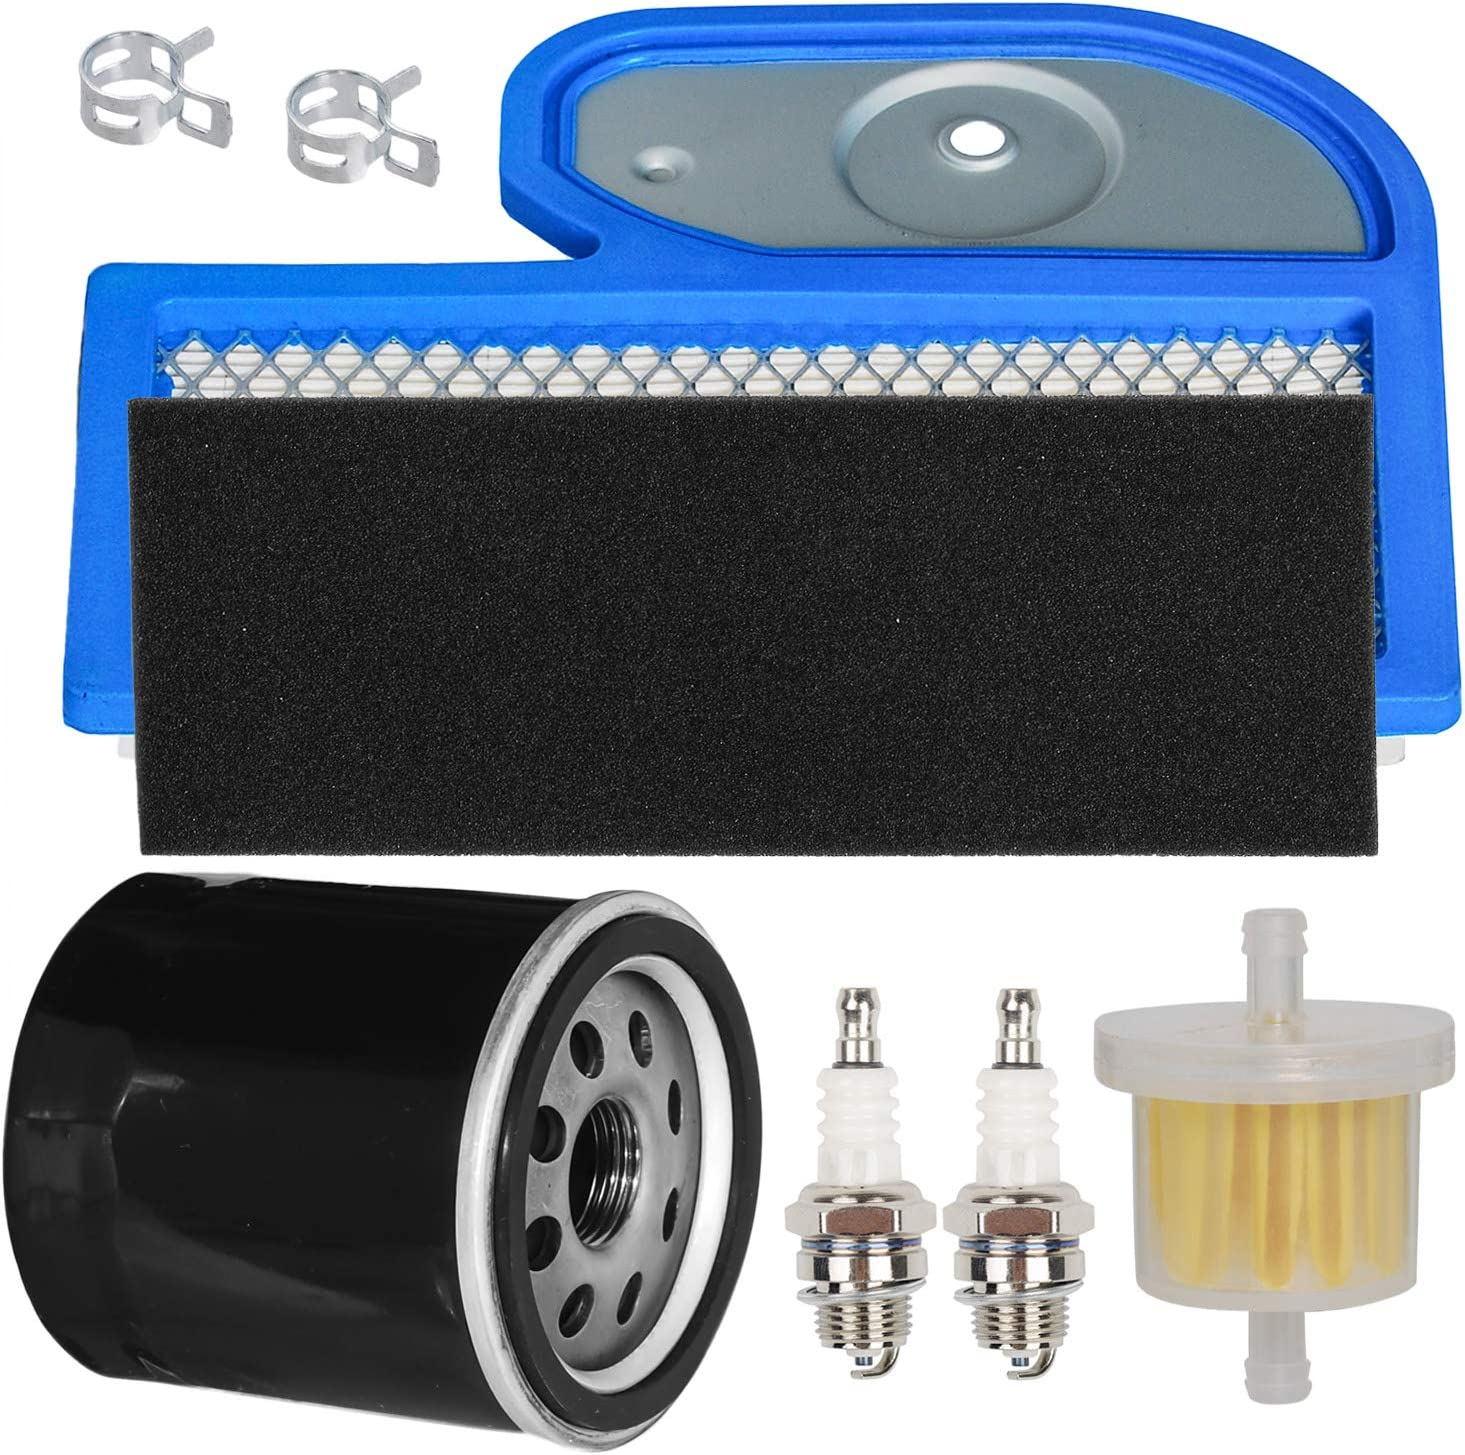 HIFROM Air Filter Pre Filter Cleaner Oil Filter Fuel Filter Spark Plug Kit Compatible with Kawasaki FH451V FH500V FH531V FH580V 17hp 19hp 23hp Replaces 11013-7002 49065-7010